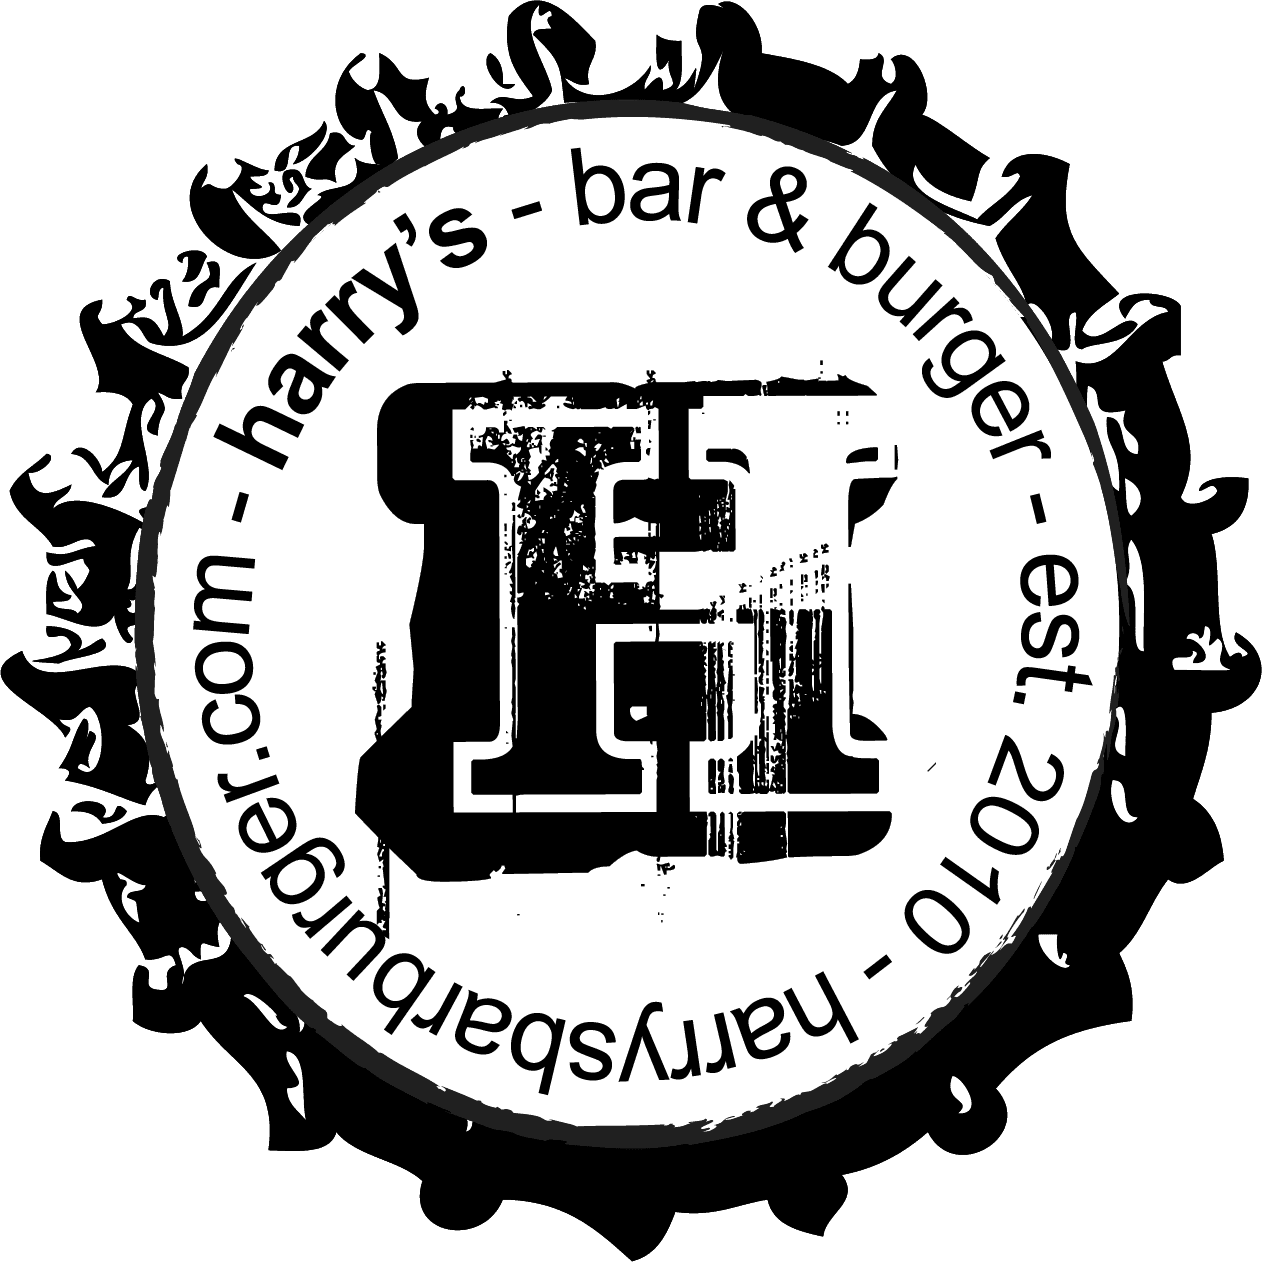 Harry's Bar & Burger